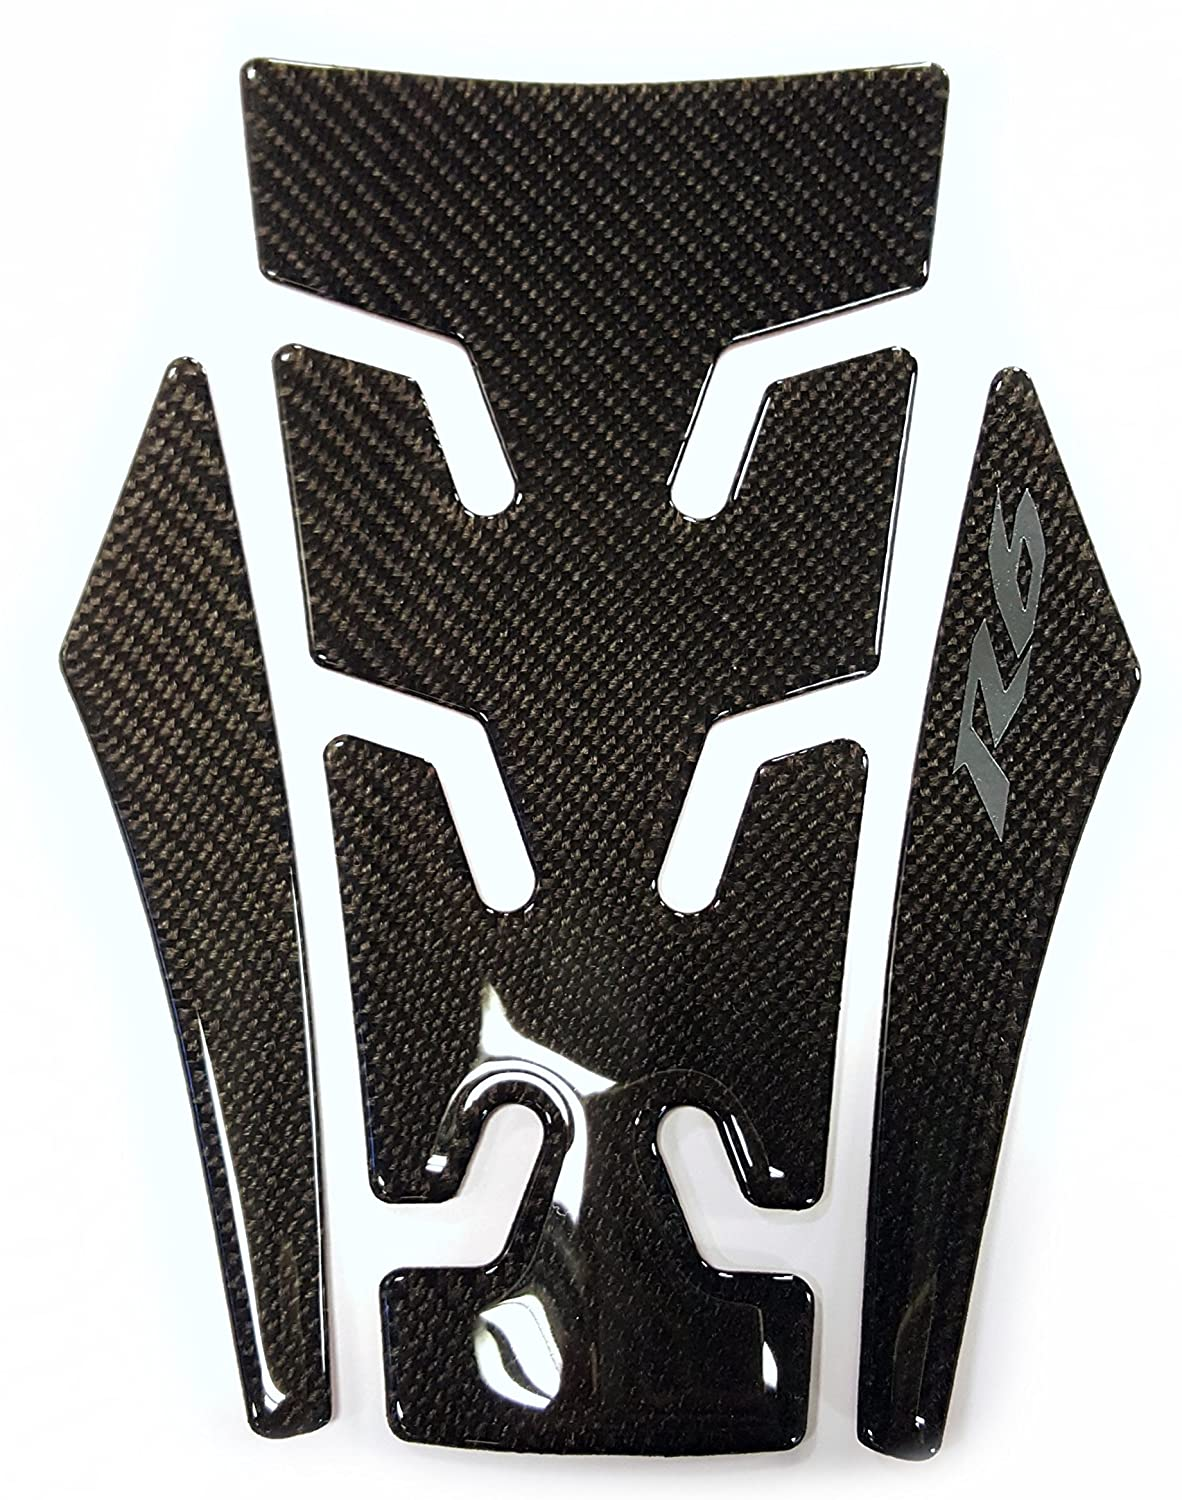 cmds Real Carbon Fiber Motorcycle Tank Protector Pad Sticker for Yamaha YZF R6 R-6 2016 2017 2018